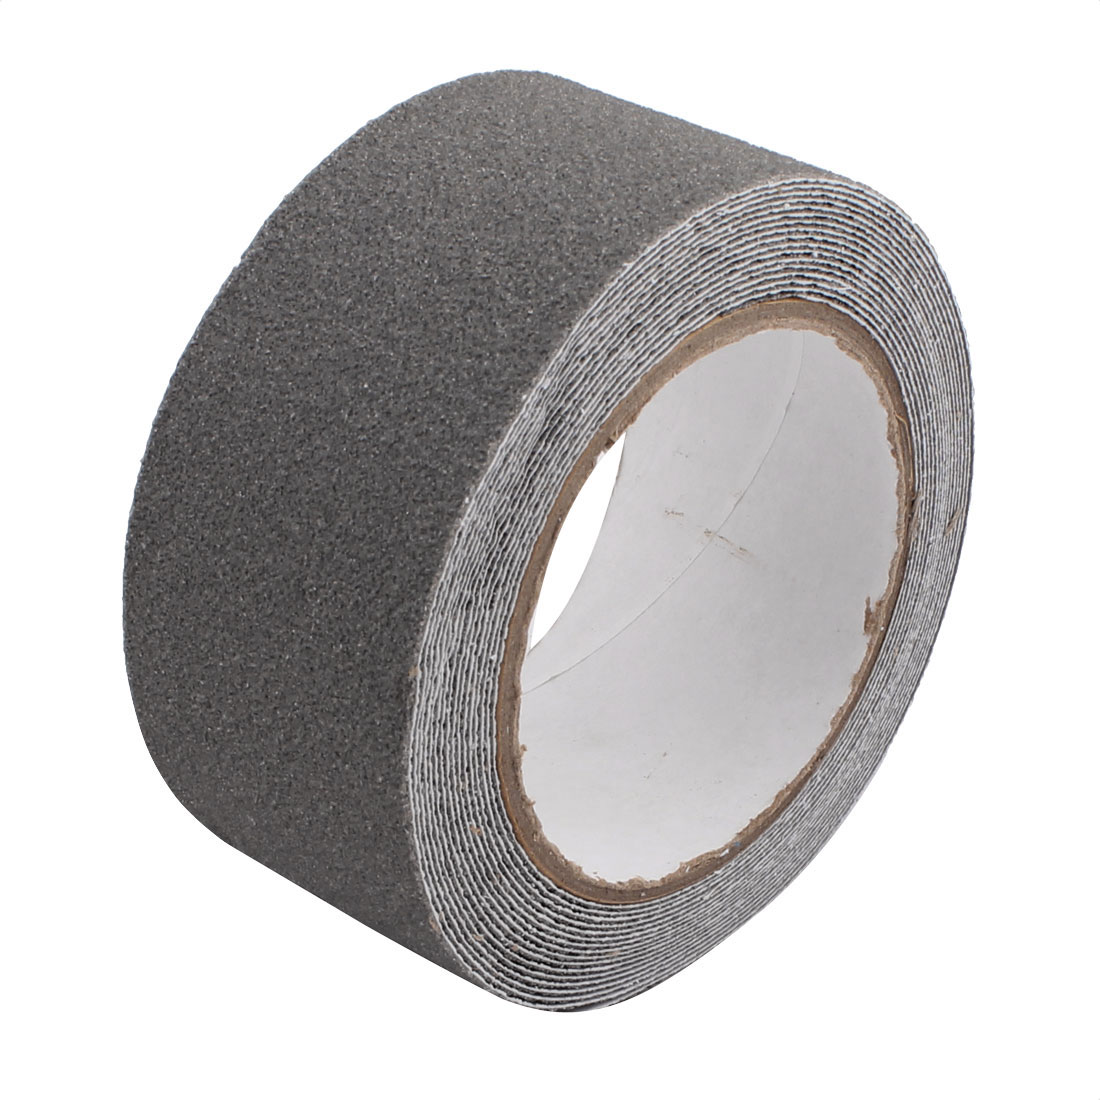 Gray Anti-Slip Grip Safety Tape High Traction Indoor Outdoor 50mmx5m